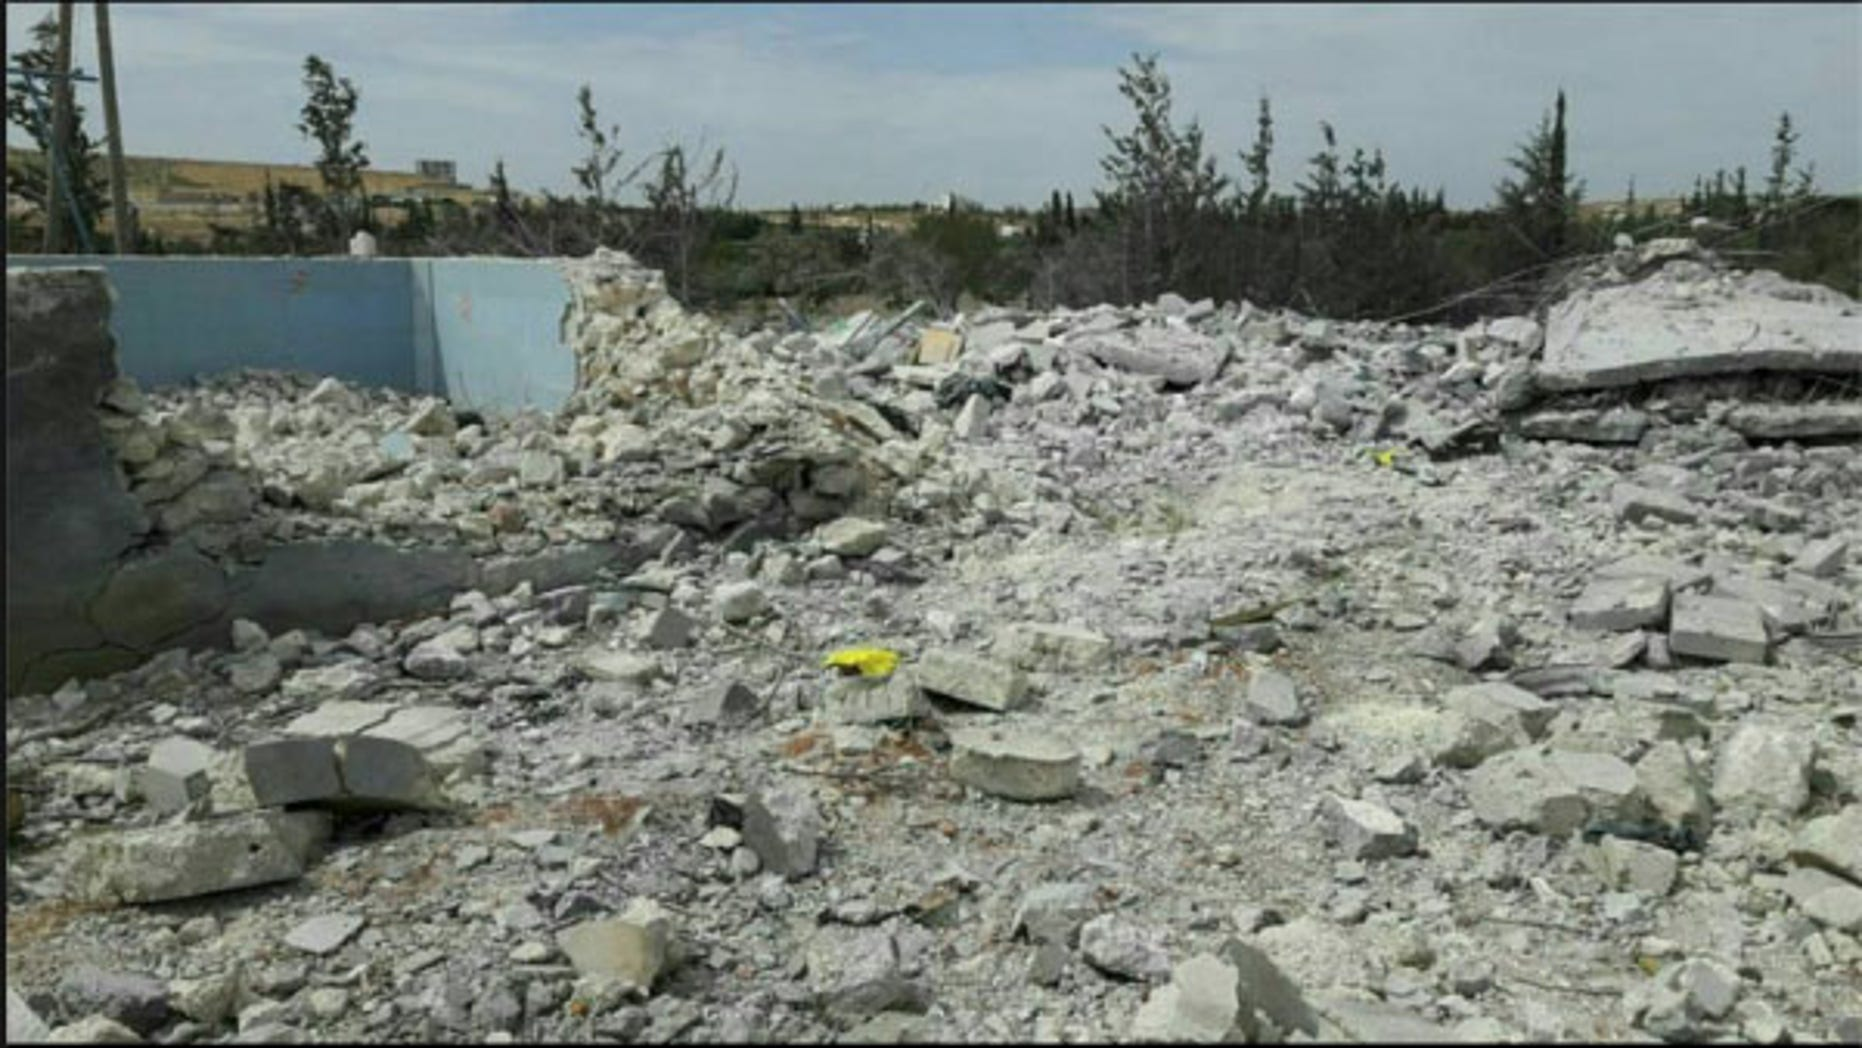 This photo is said to show the aftermath of the airstrike that killed the American couple.